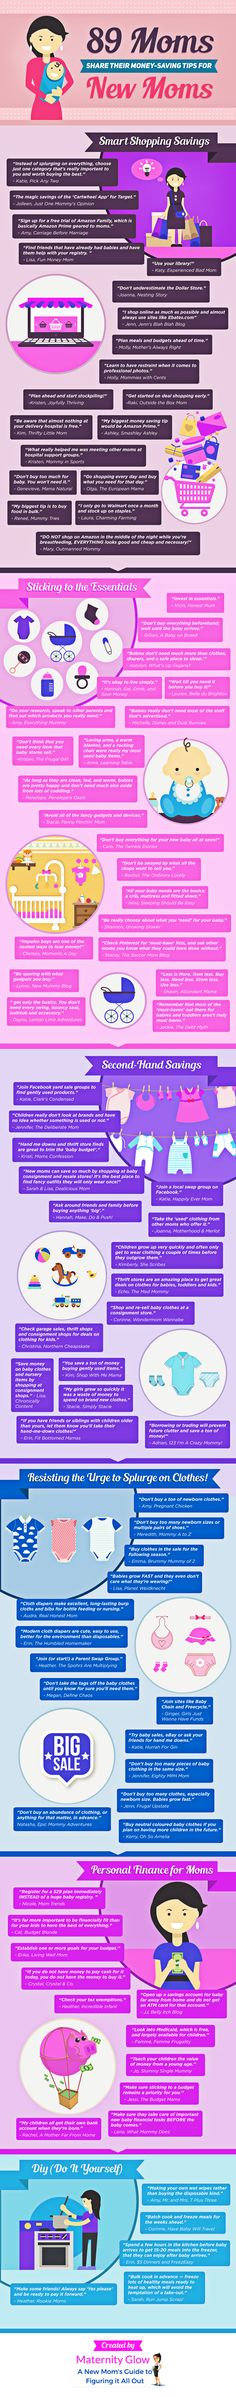 89 Moms Share Their Money-Saving Tips for New Moms (Infographic) - Maternity Glow